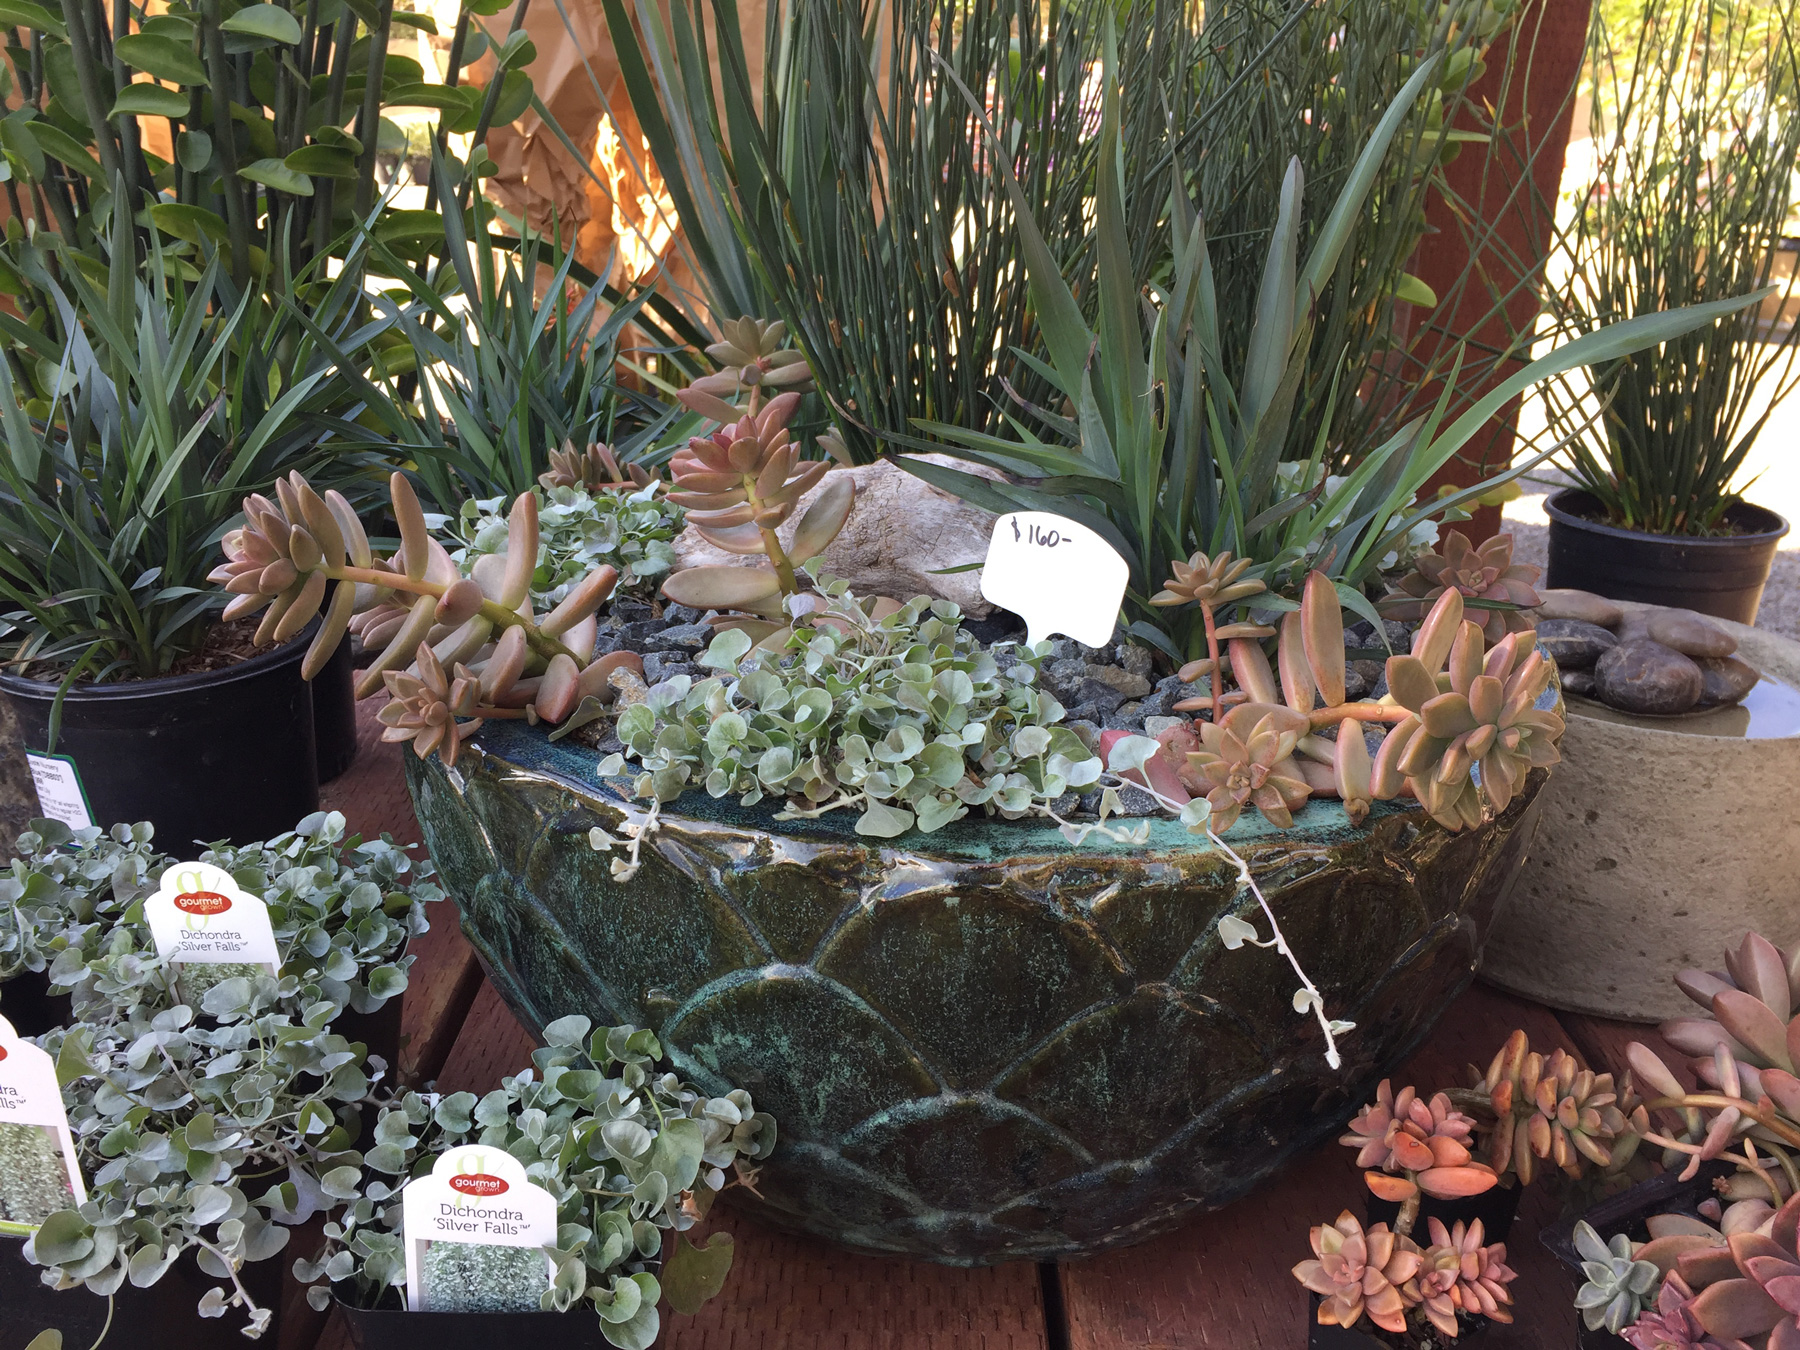 Garden-Store-Potted-Plants-Encinitas-California